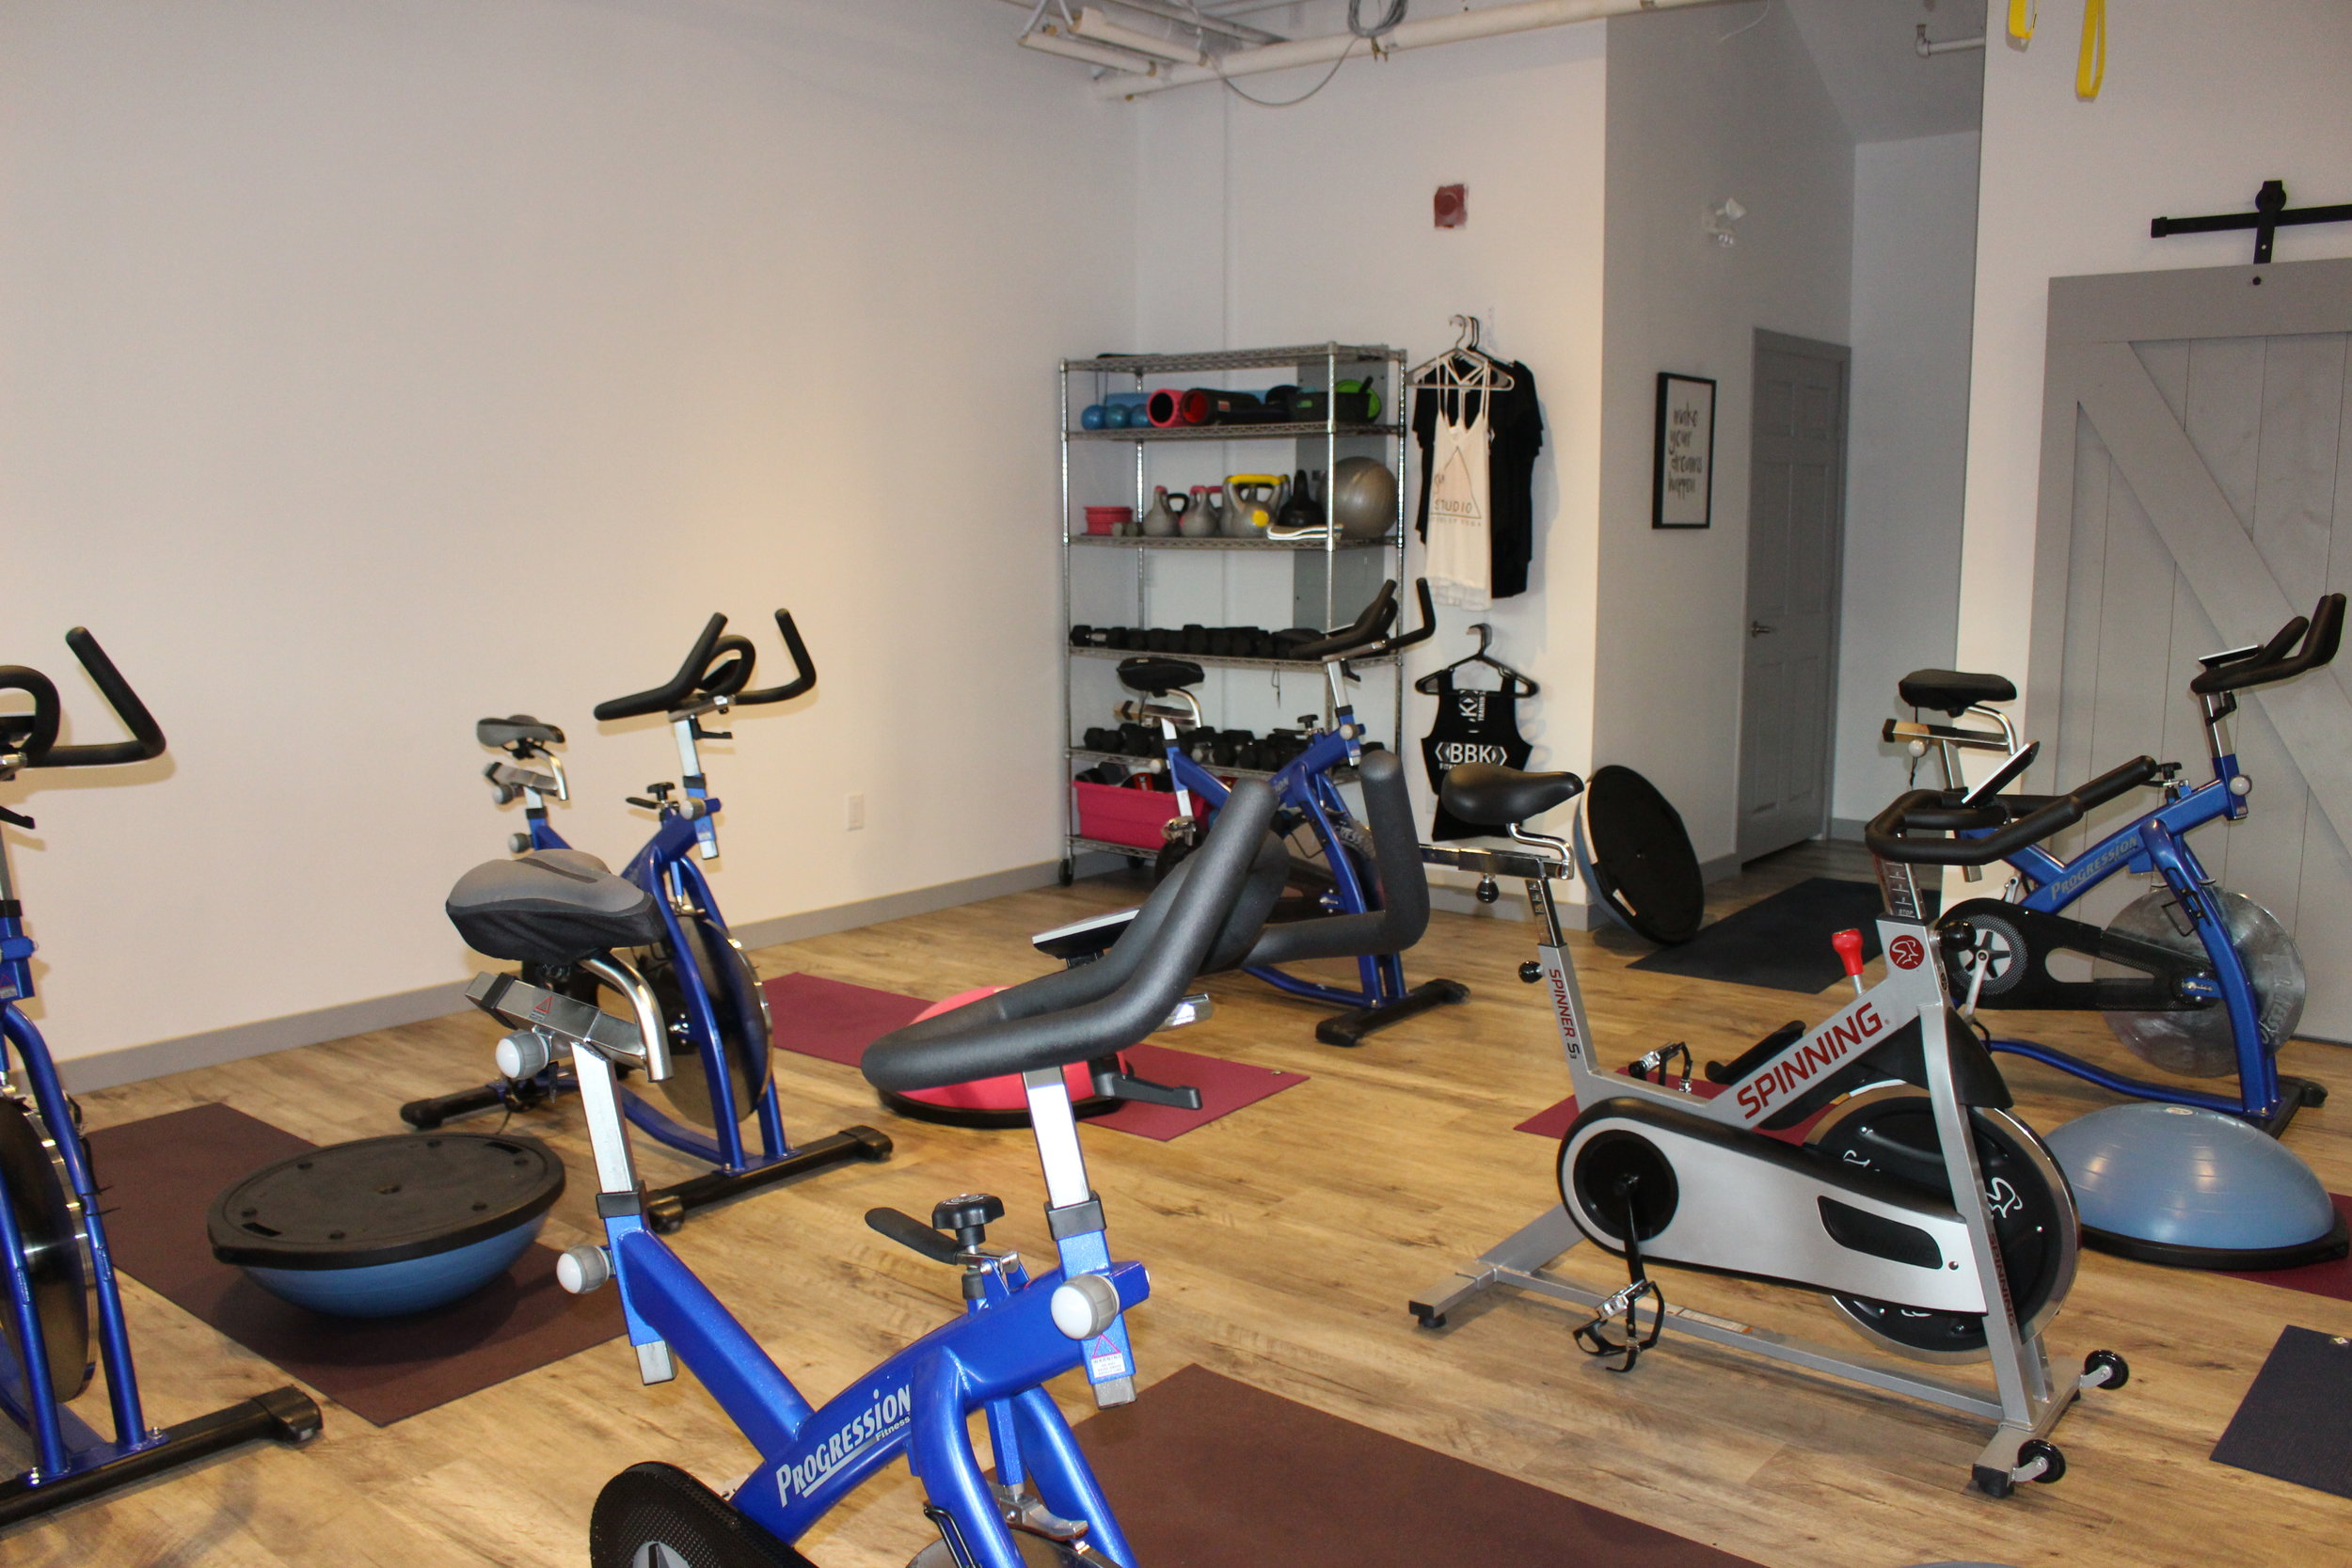 The set up for Spinfit, my favourite class offered by Kara